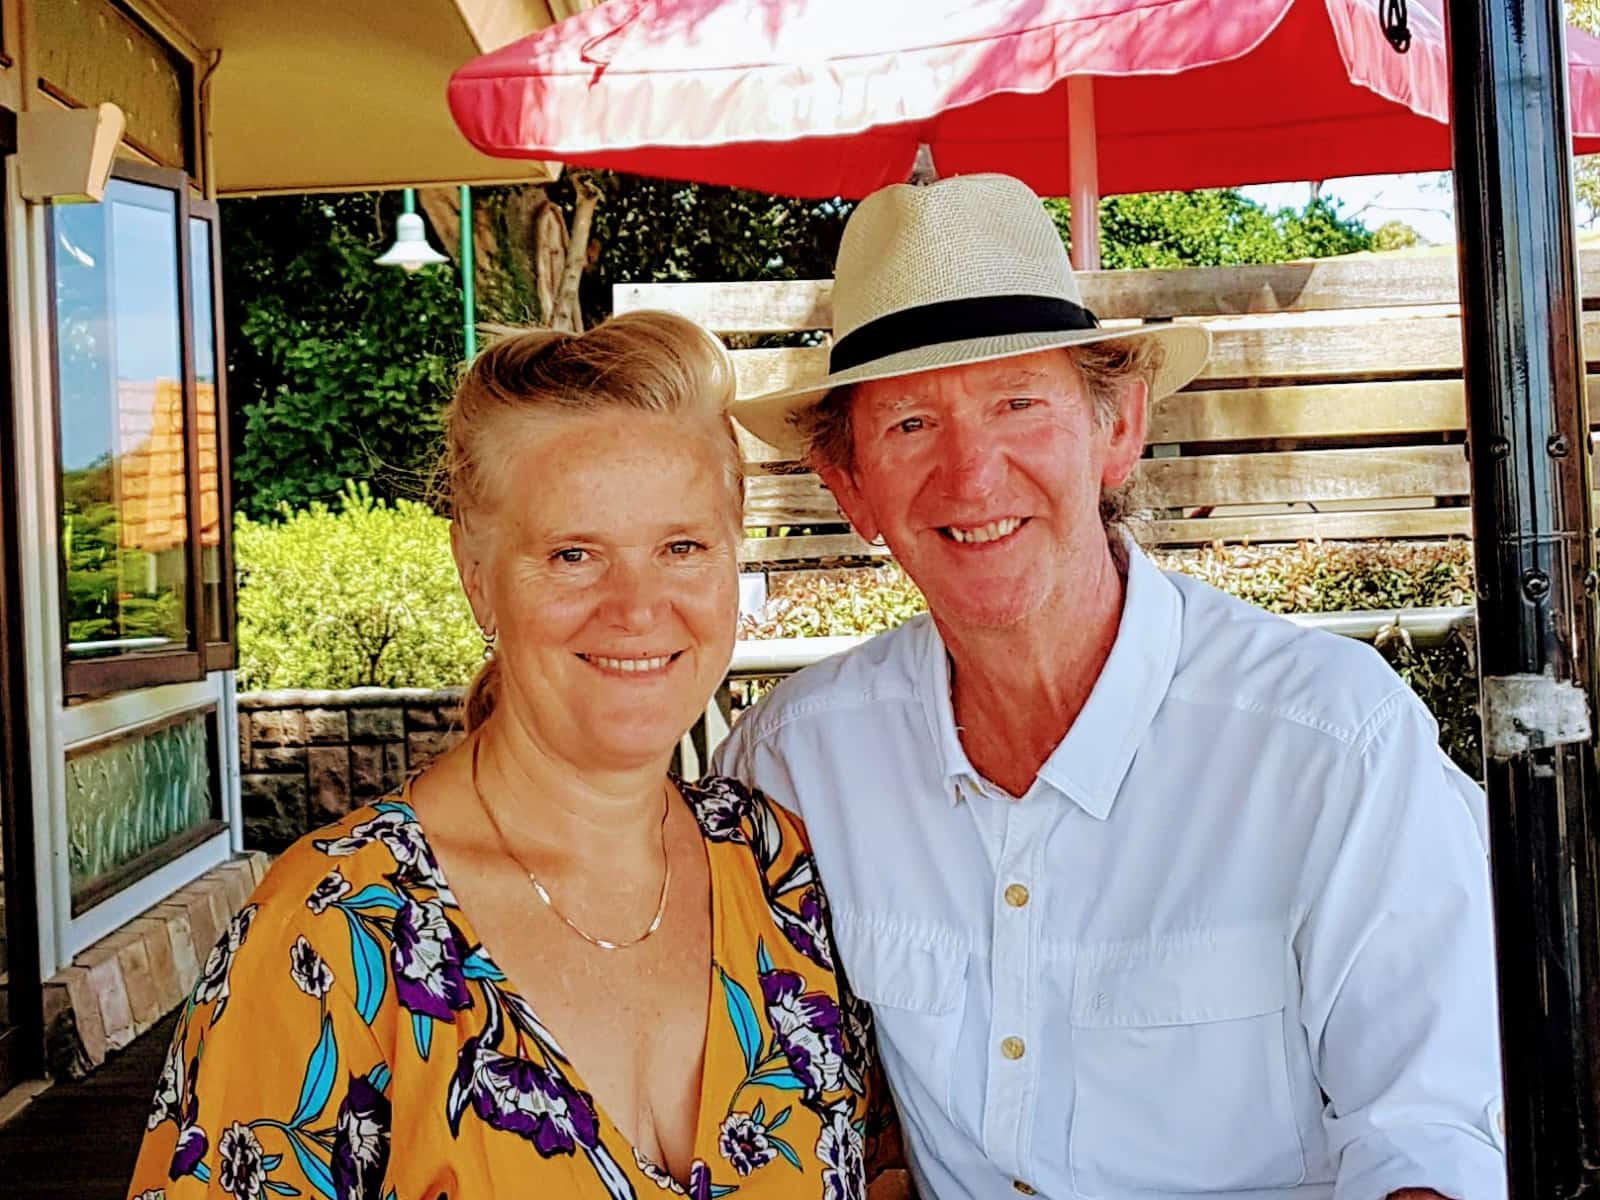 Galina & Steve from Port Macquarie, New South Wales, Australia